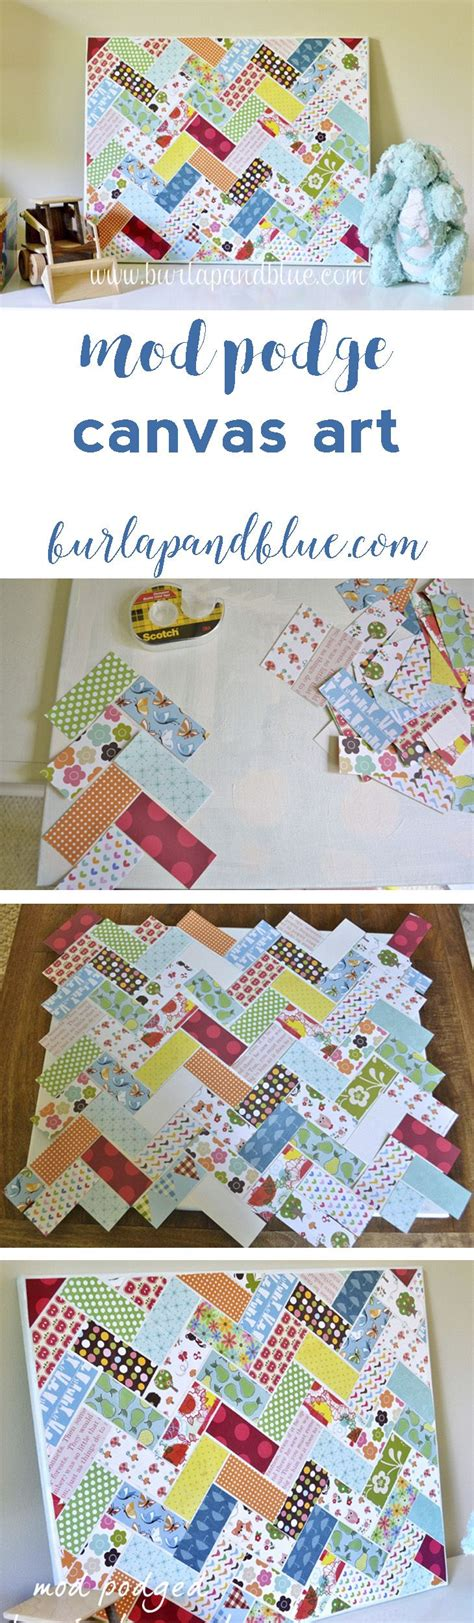 crafts with scrapbook paper best 25 scrapbook paper ideas on